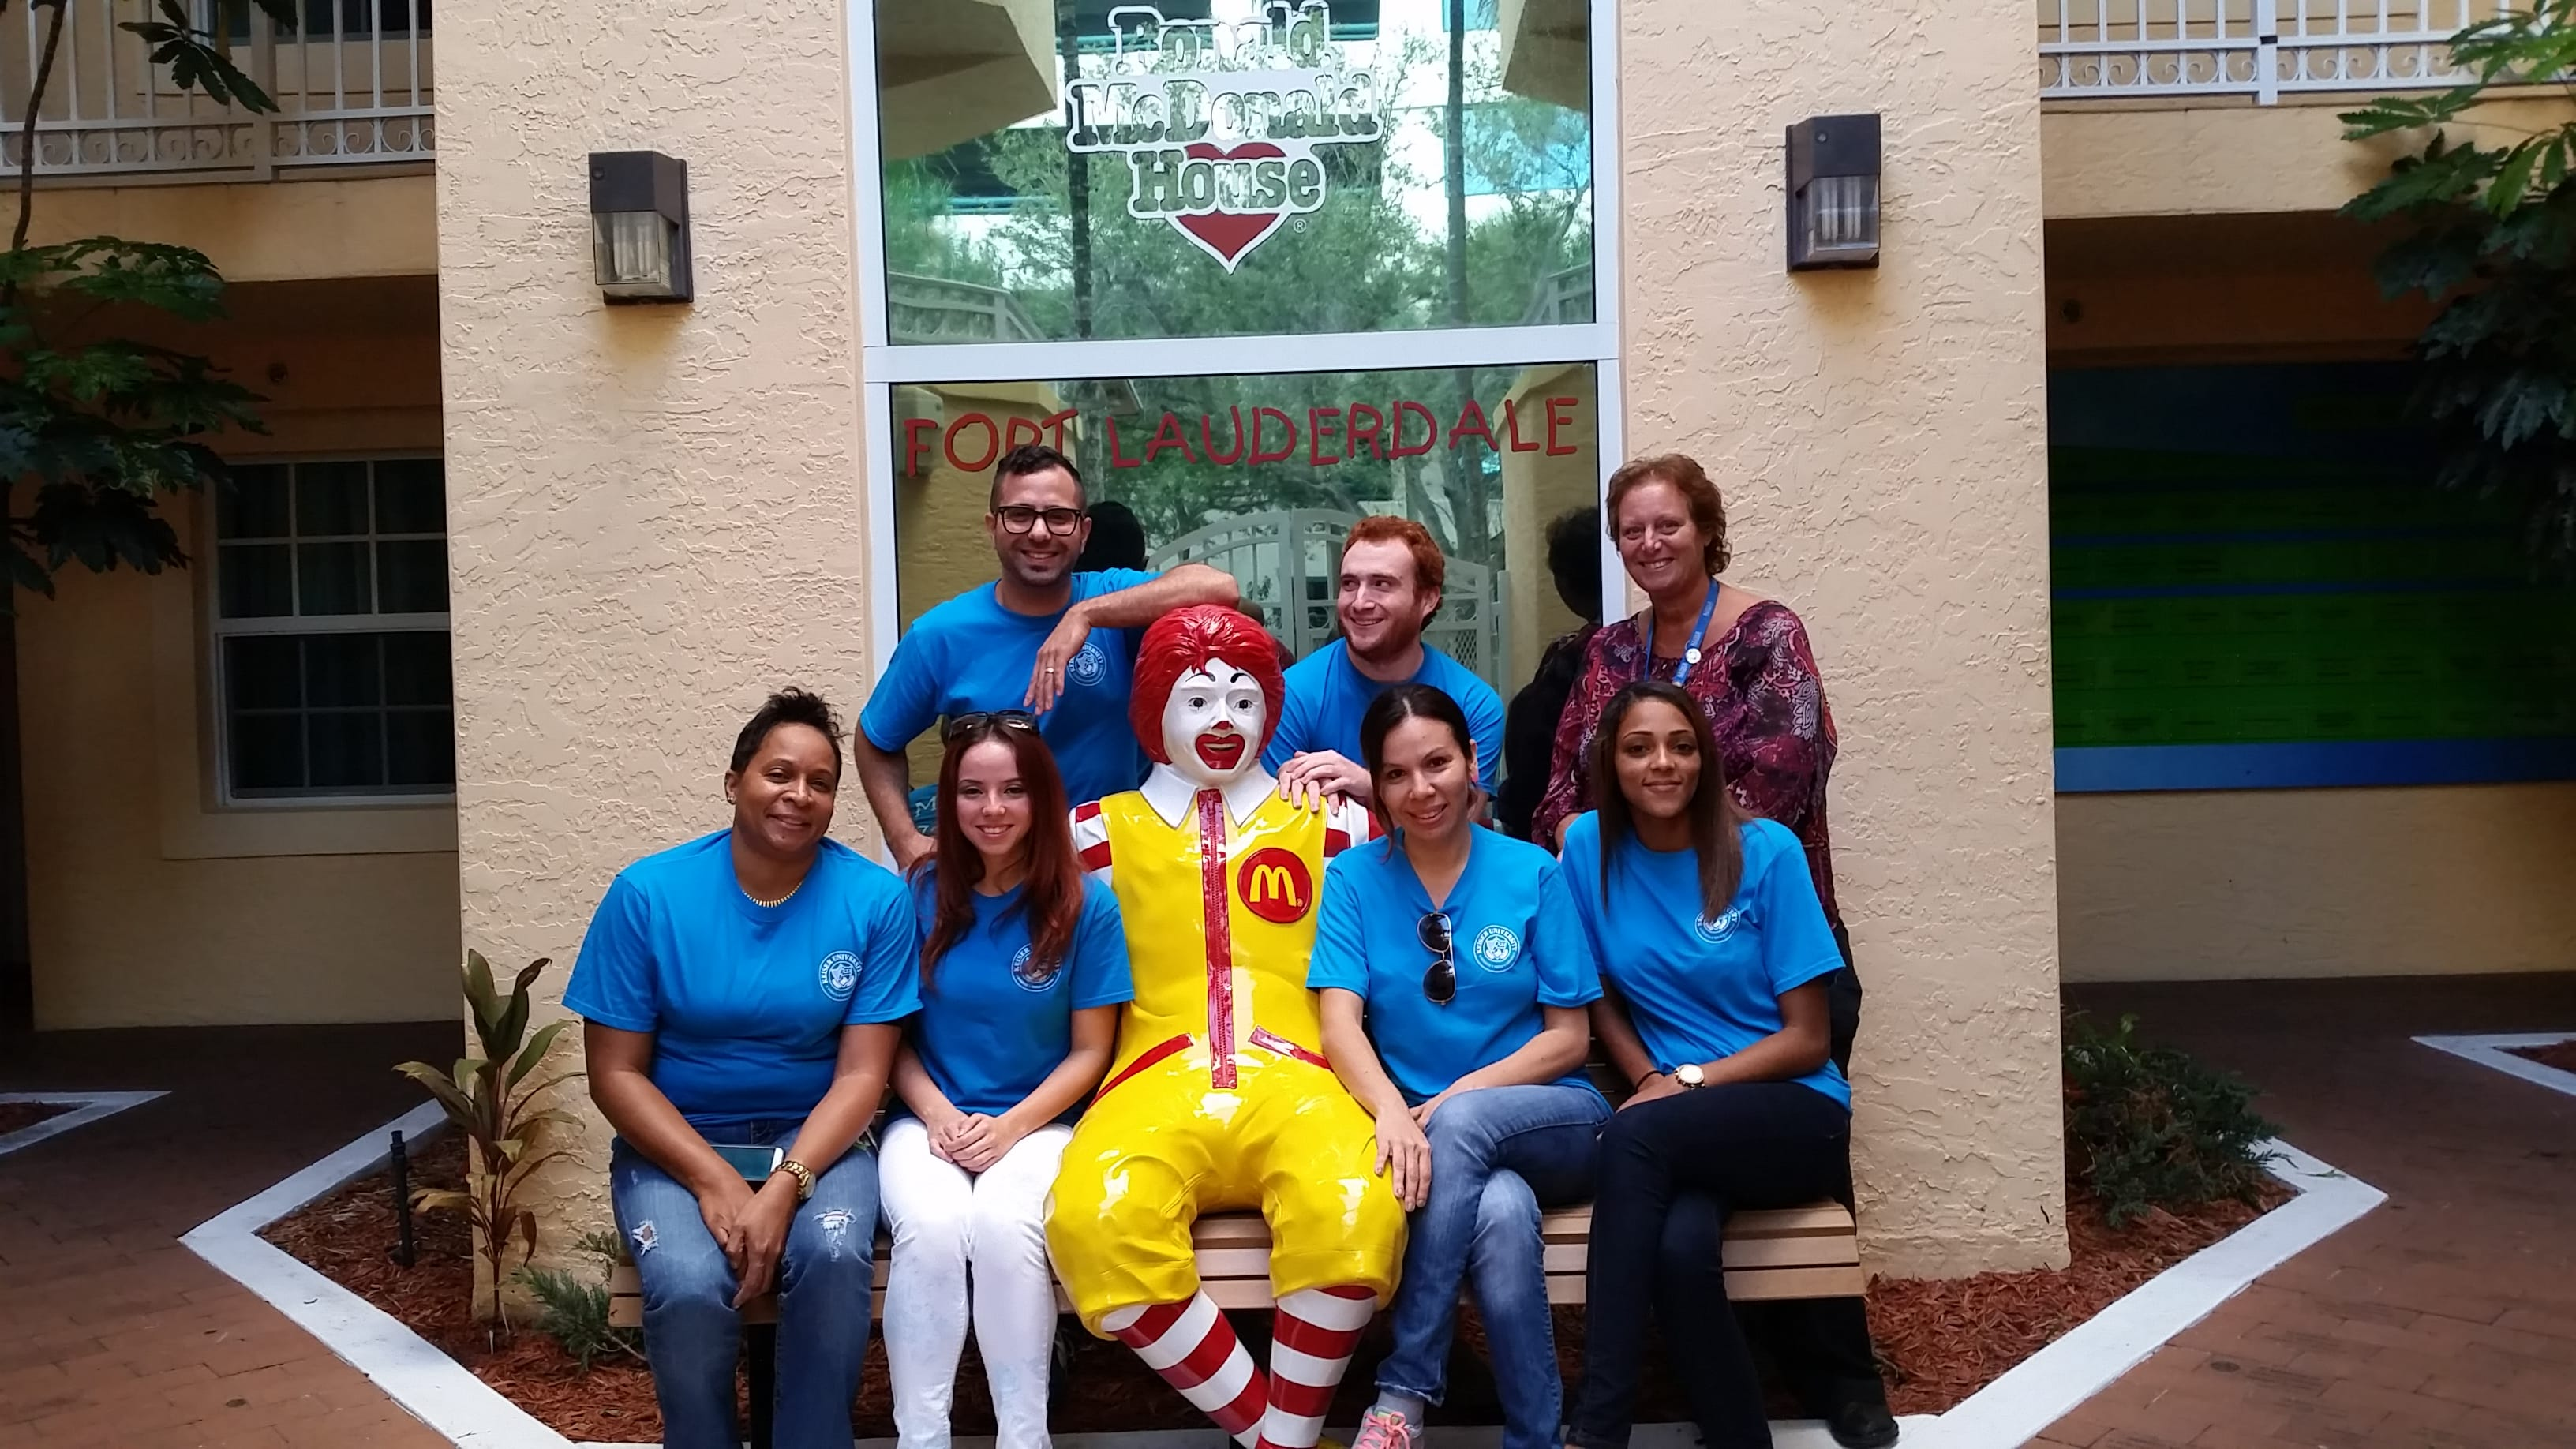 The Ronald McDonald House of Ft. Lauderdale Receives a Visit from the SOTA Club